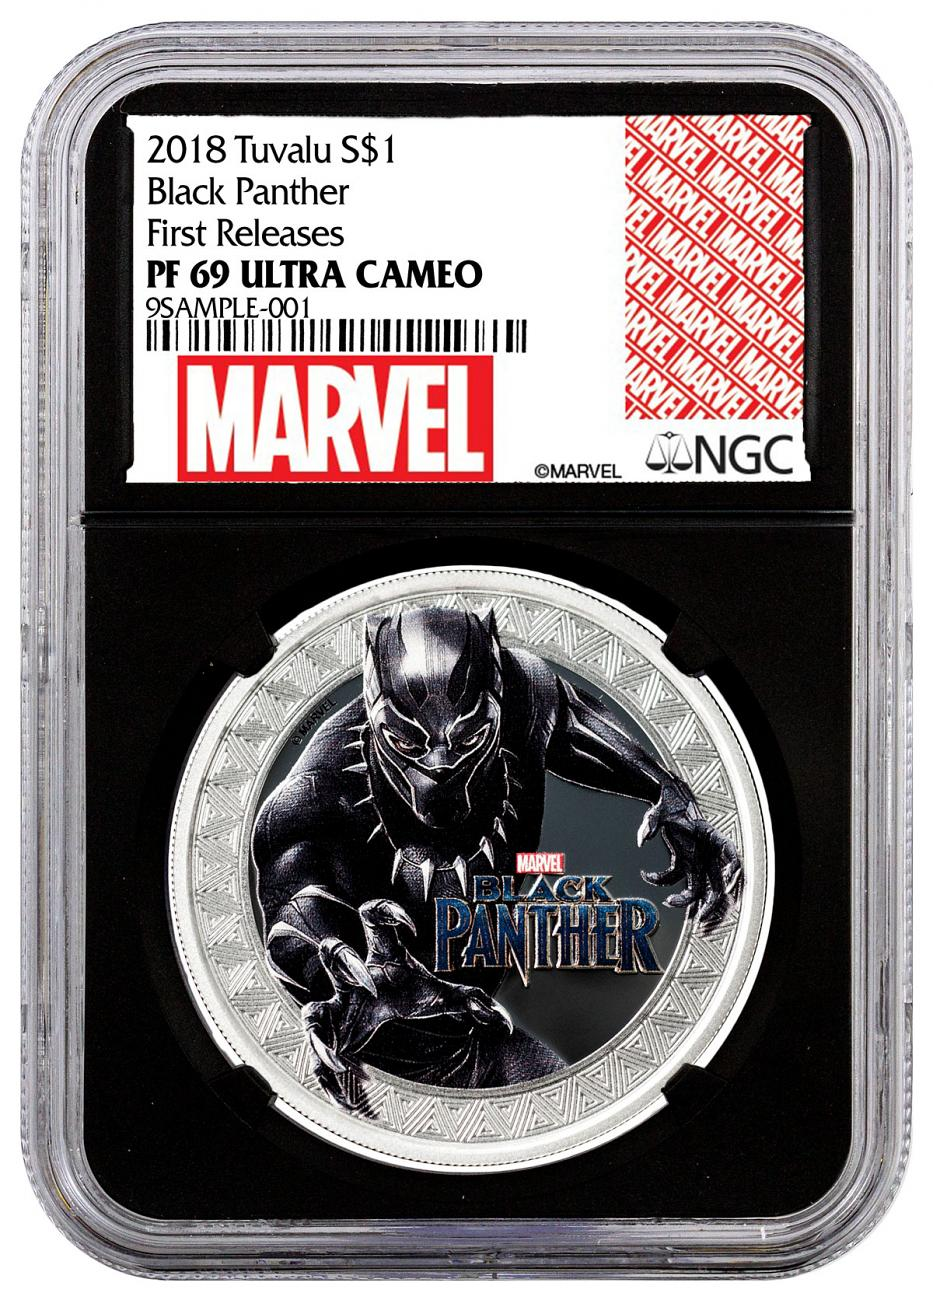 2018 Tuvalu Marvel Series - Black Panther 1 oz Silver Colorized Proof $1 Coin NGC PF69 UC FR Black Core Holder Exclusive Marvel Label